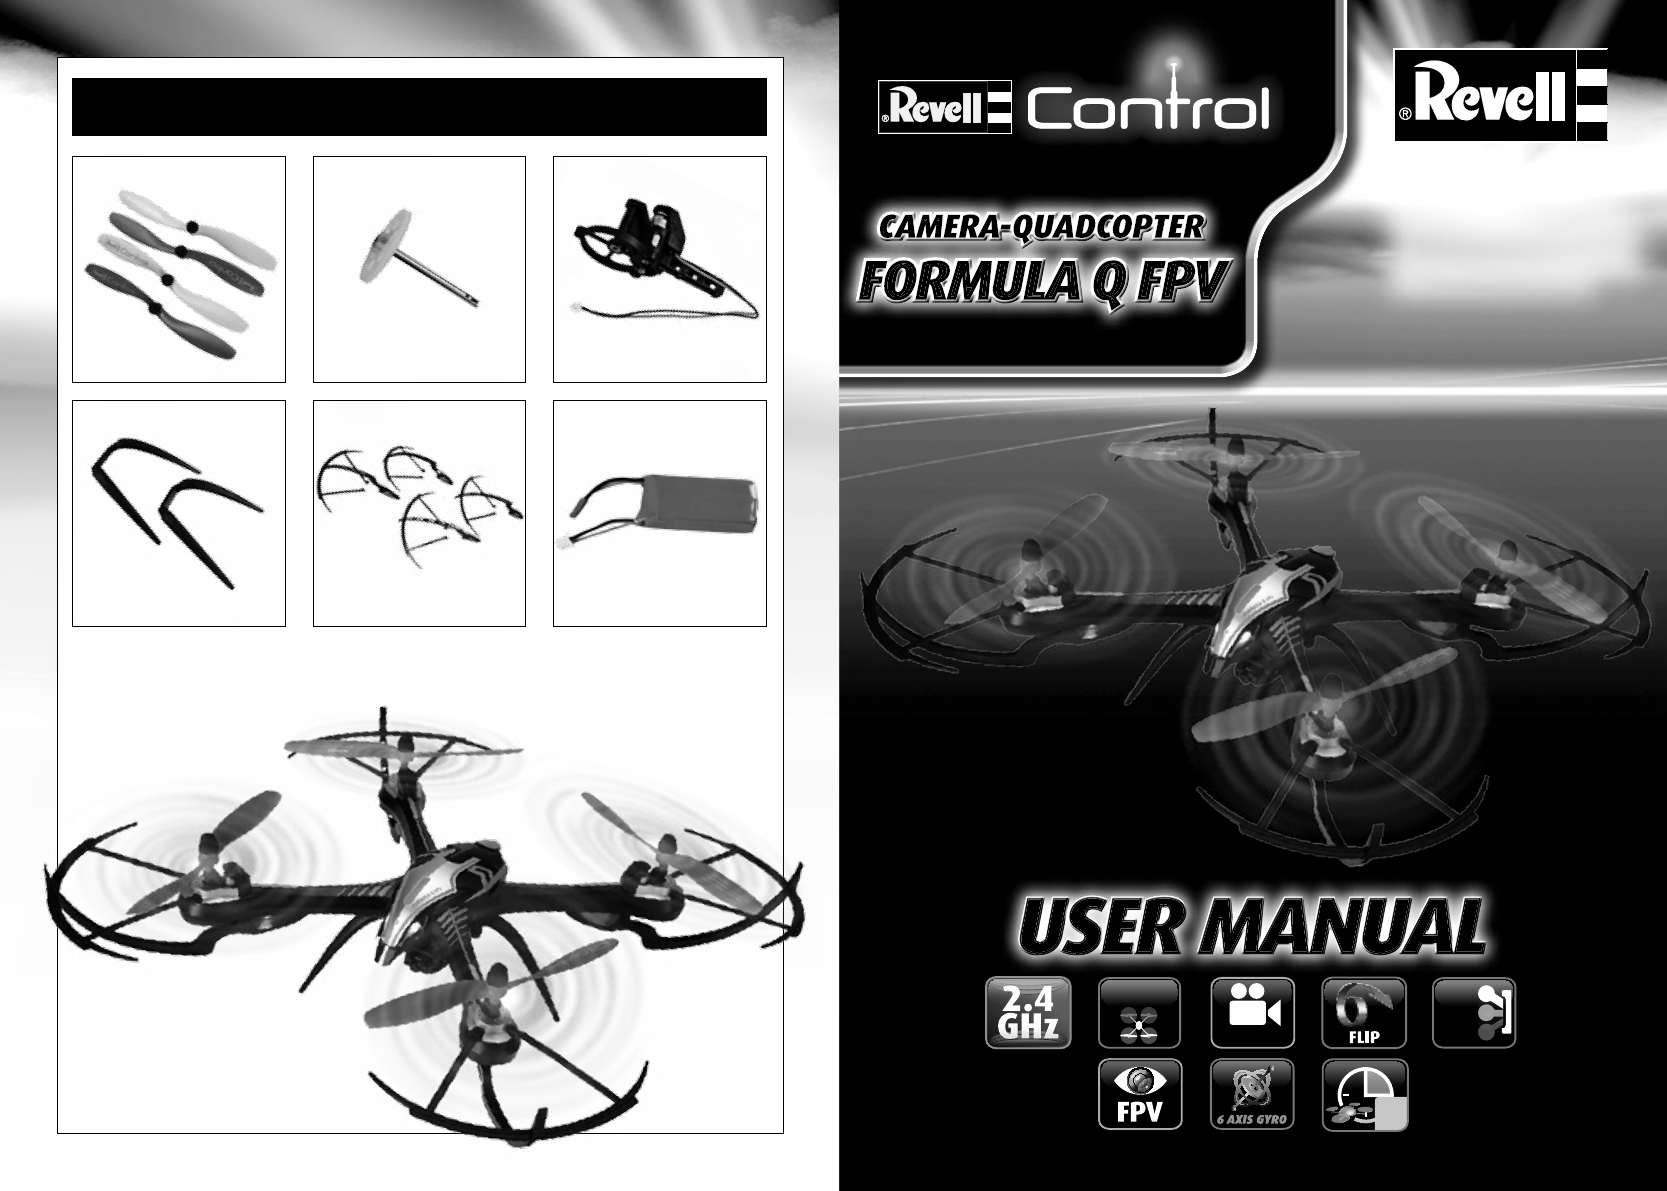 📖 User manual Revell Formula Q Fpv (28 pages)